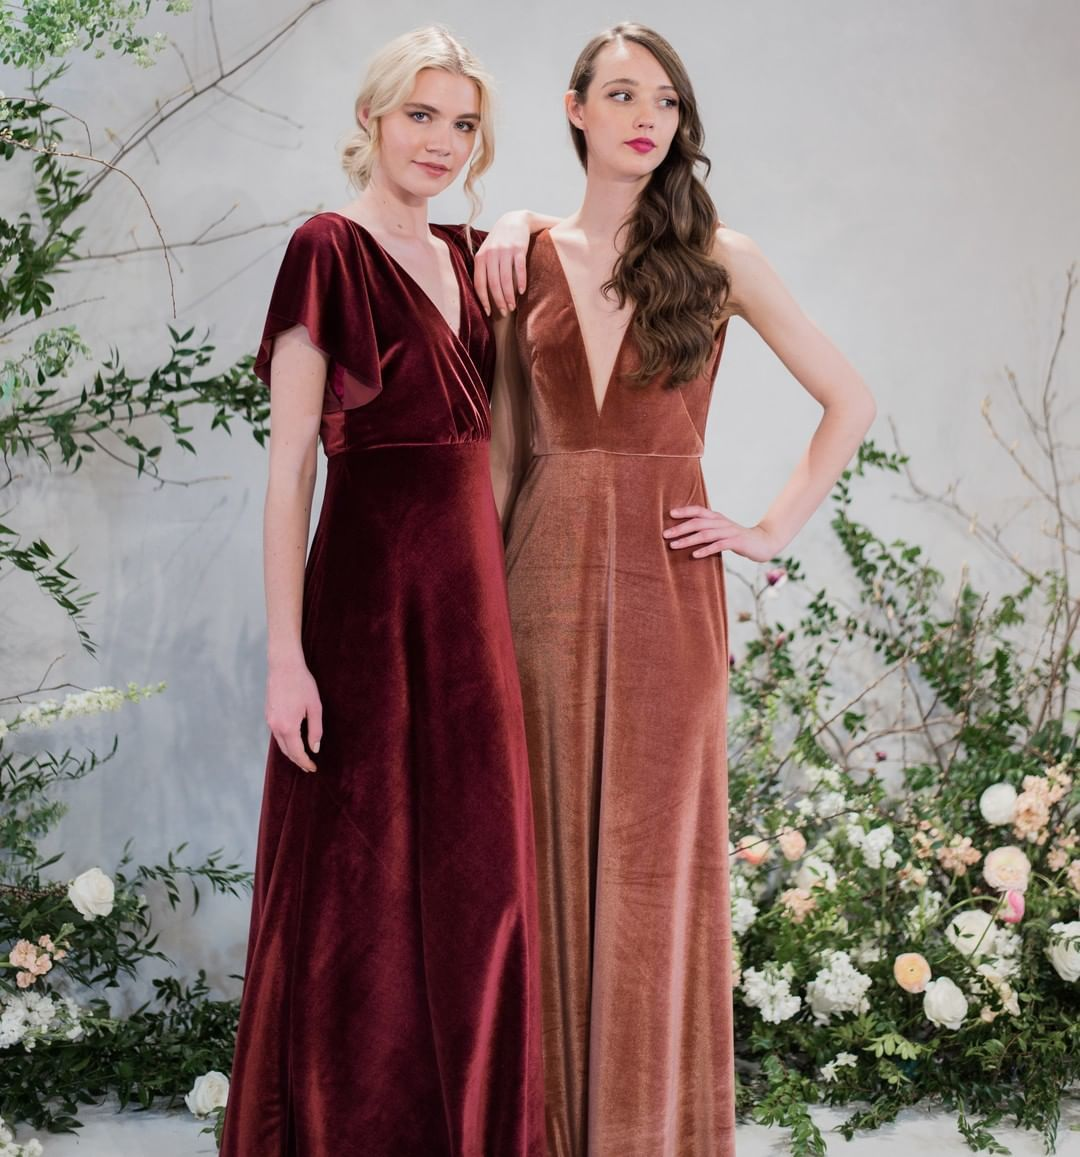 7 Gorgeous bridesmaid dress colours for autumn wedding - burgundy bridesmaid dress, purple bridesmaid dress, copper #bridesmaid #bridesmaiddress